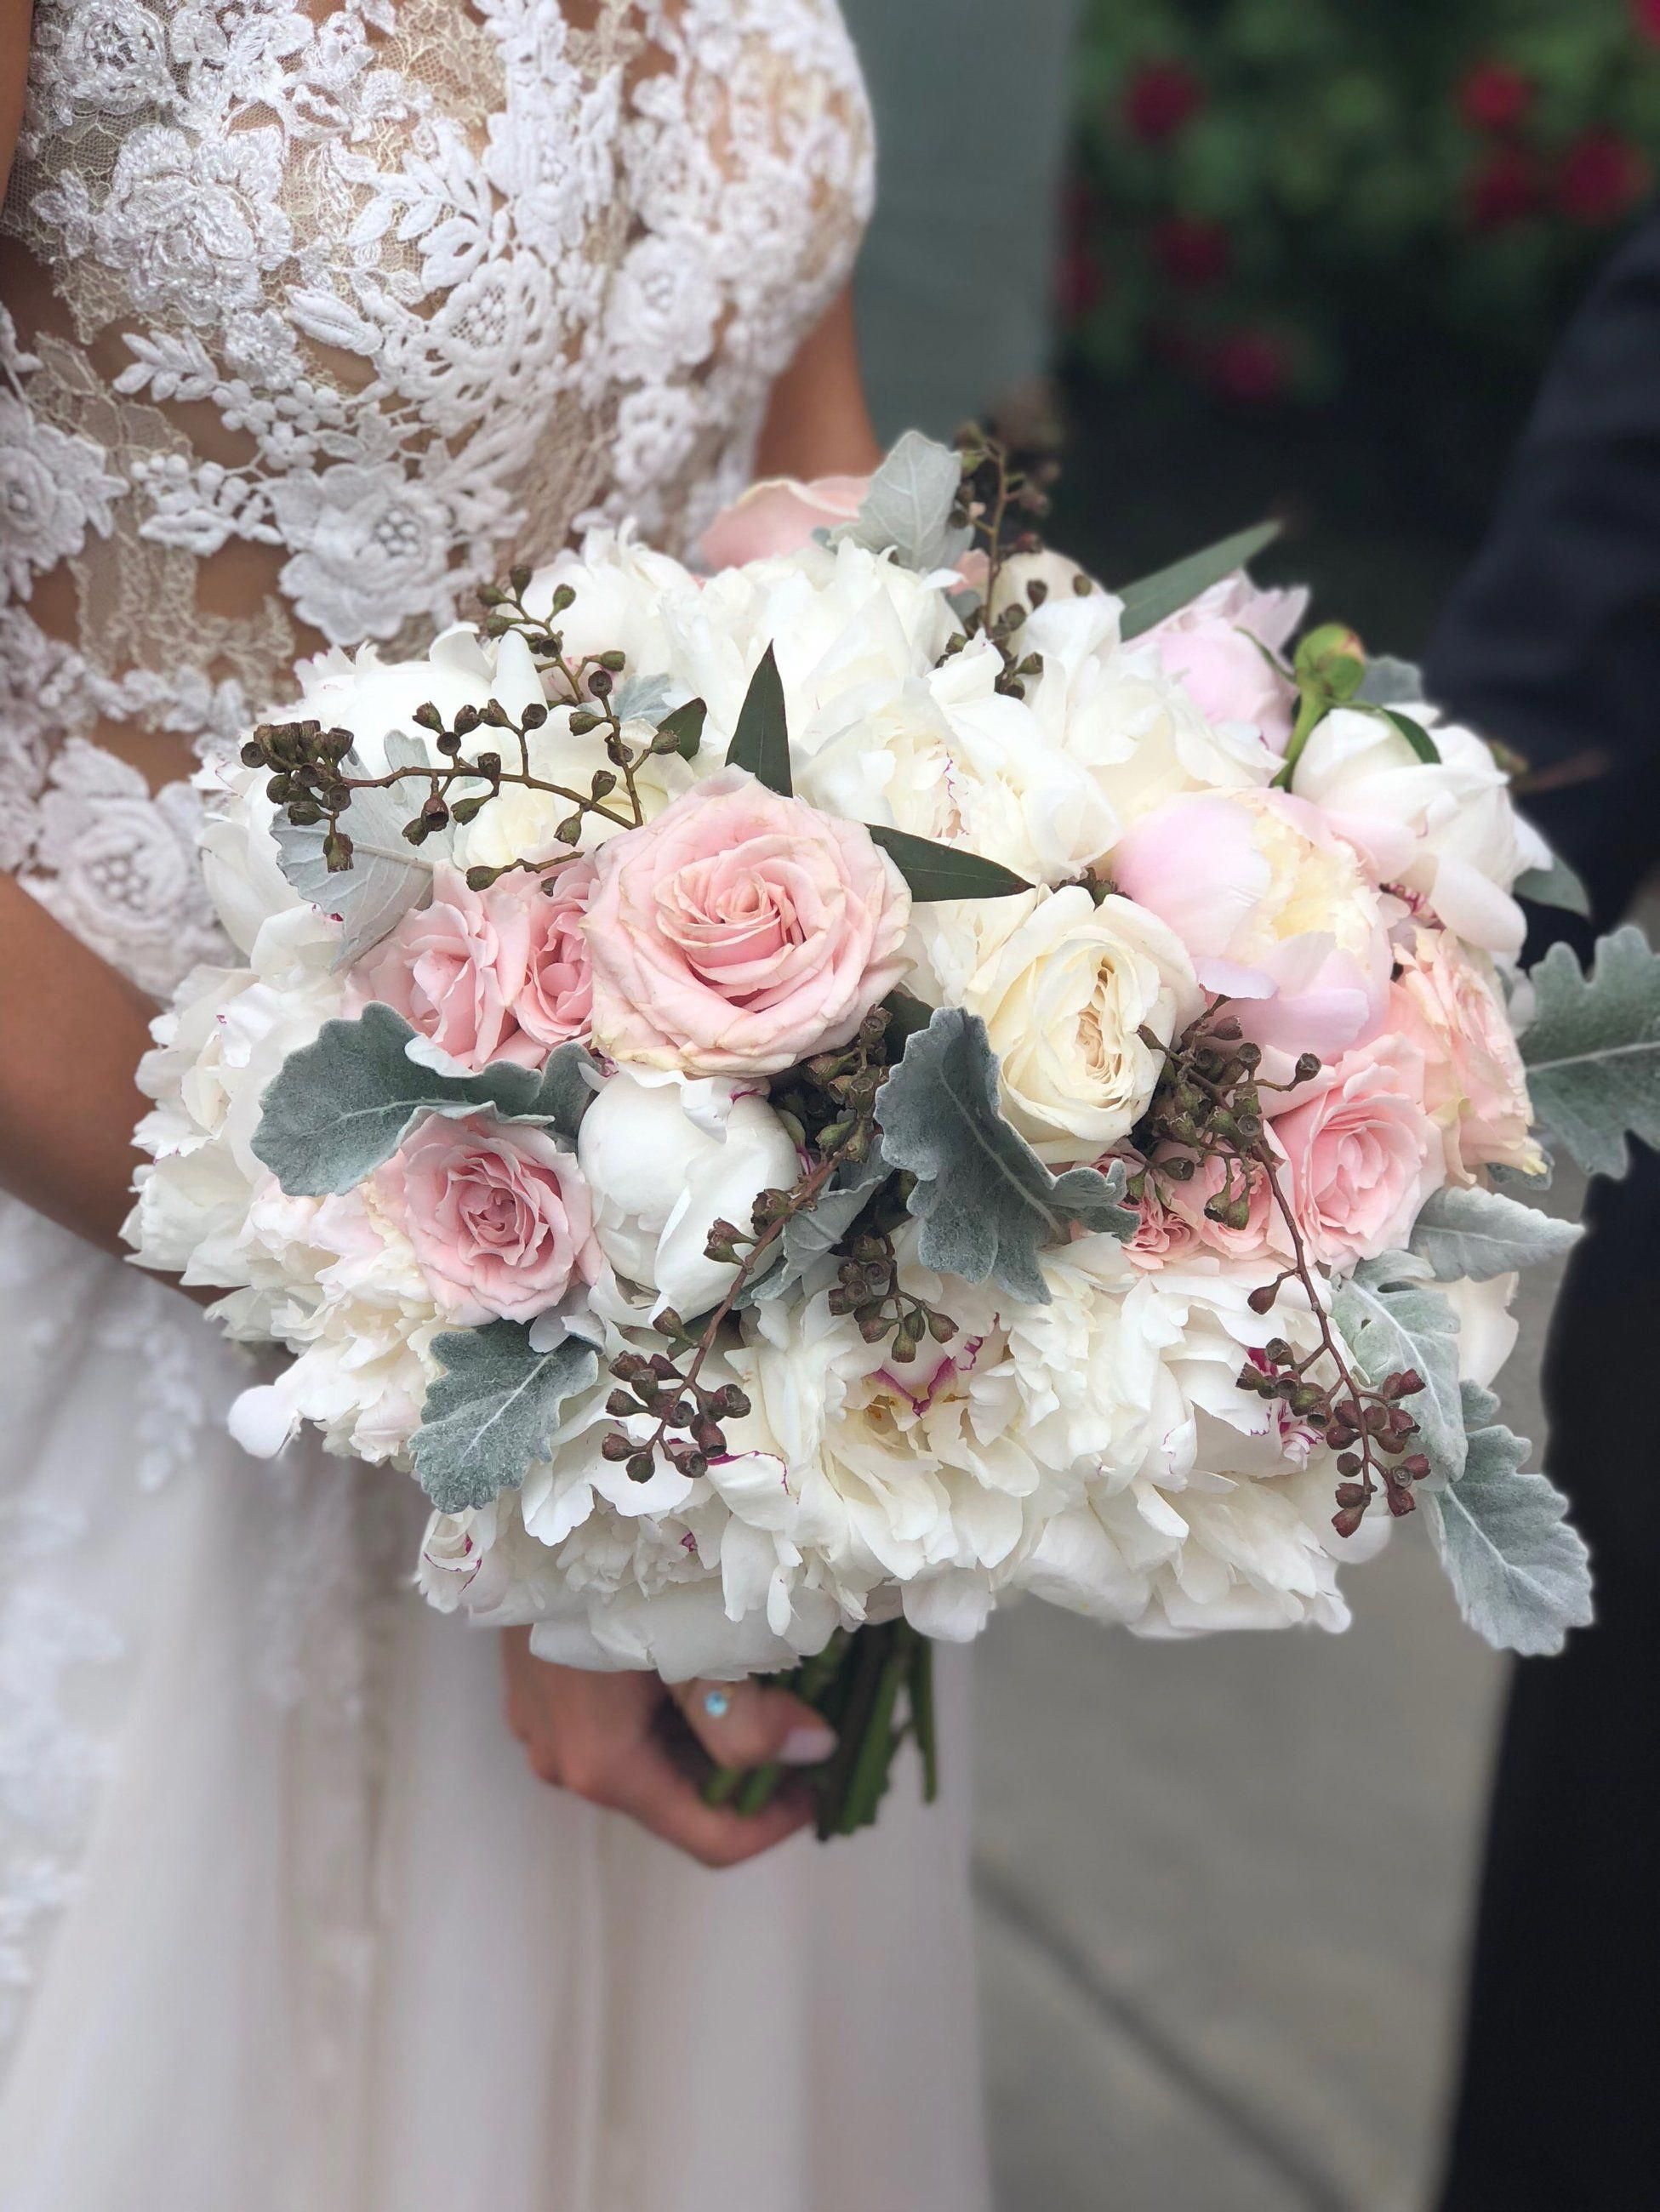 Peonies, Roses, Seeded Eucalyptus, Dusty Miller, and the